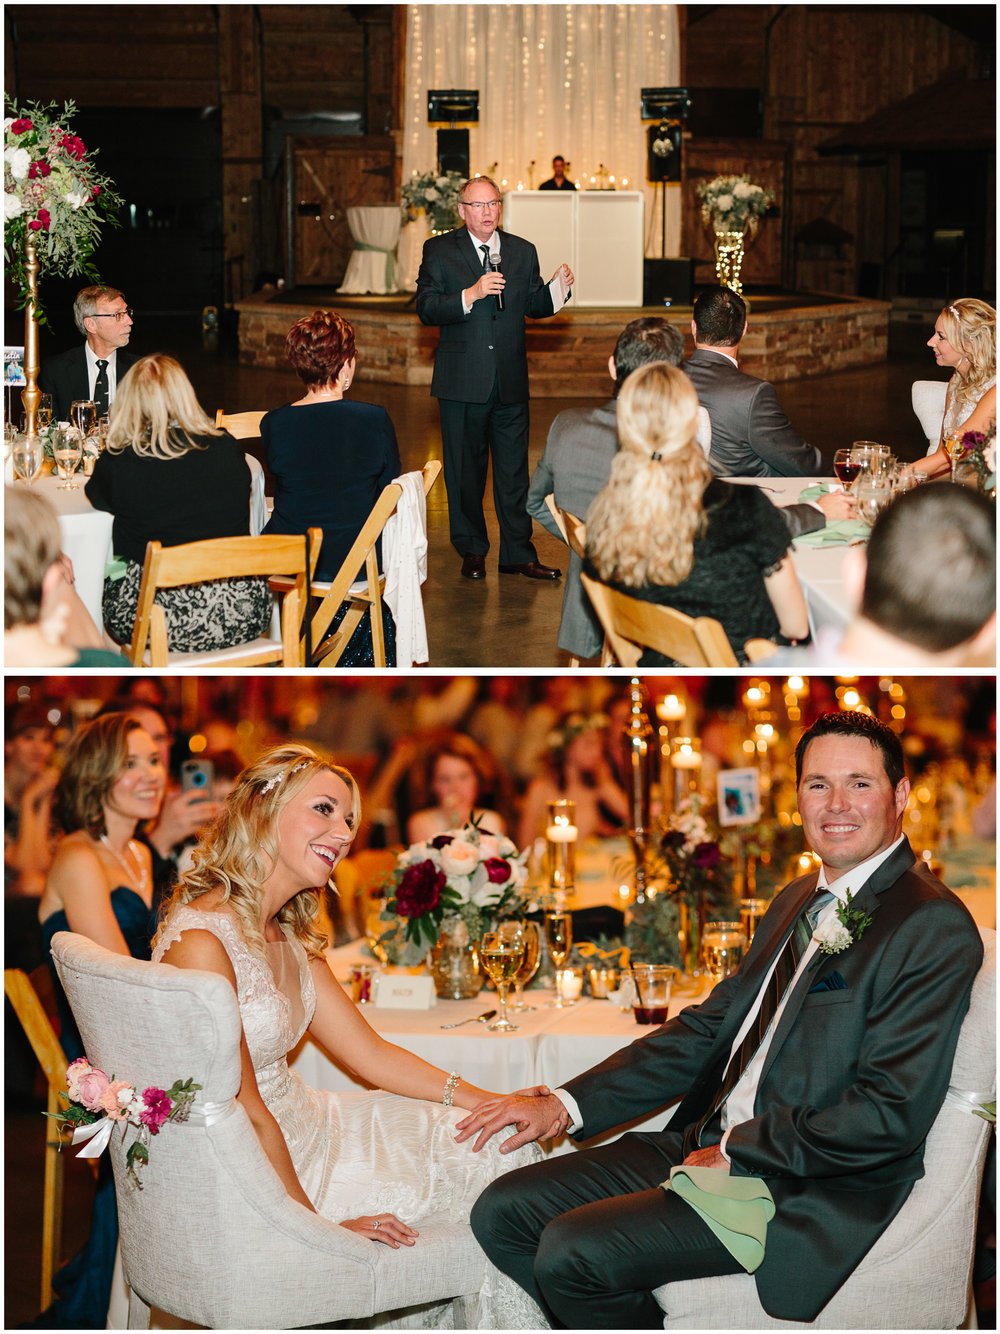 spruce_mountain_ranch_wedding_66.jpg